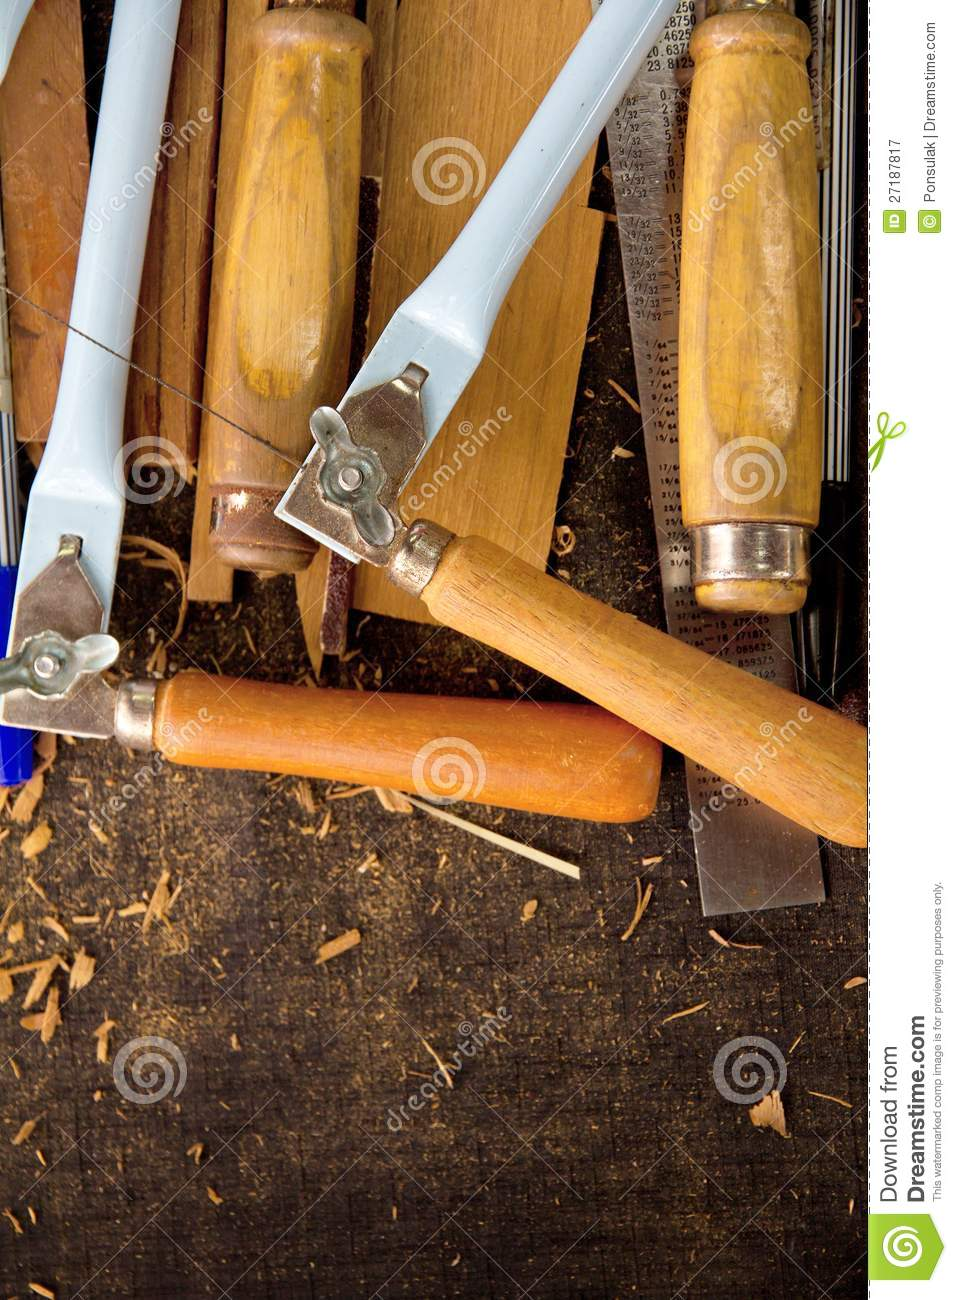 Art and craft tool royalty free stock photography image for Arts and crafts tools